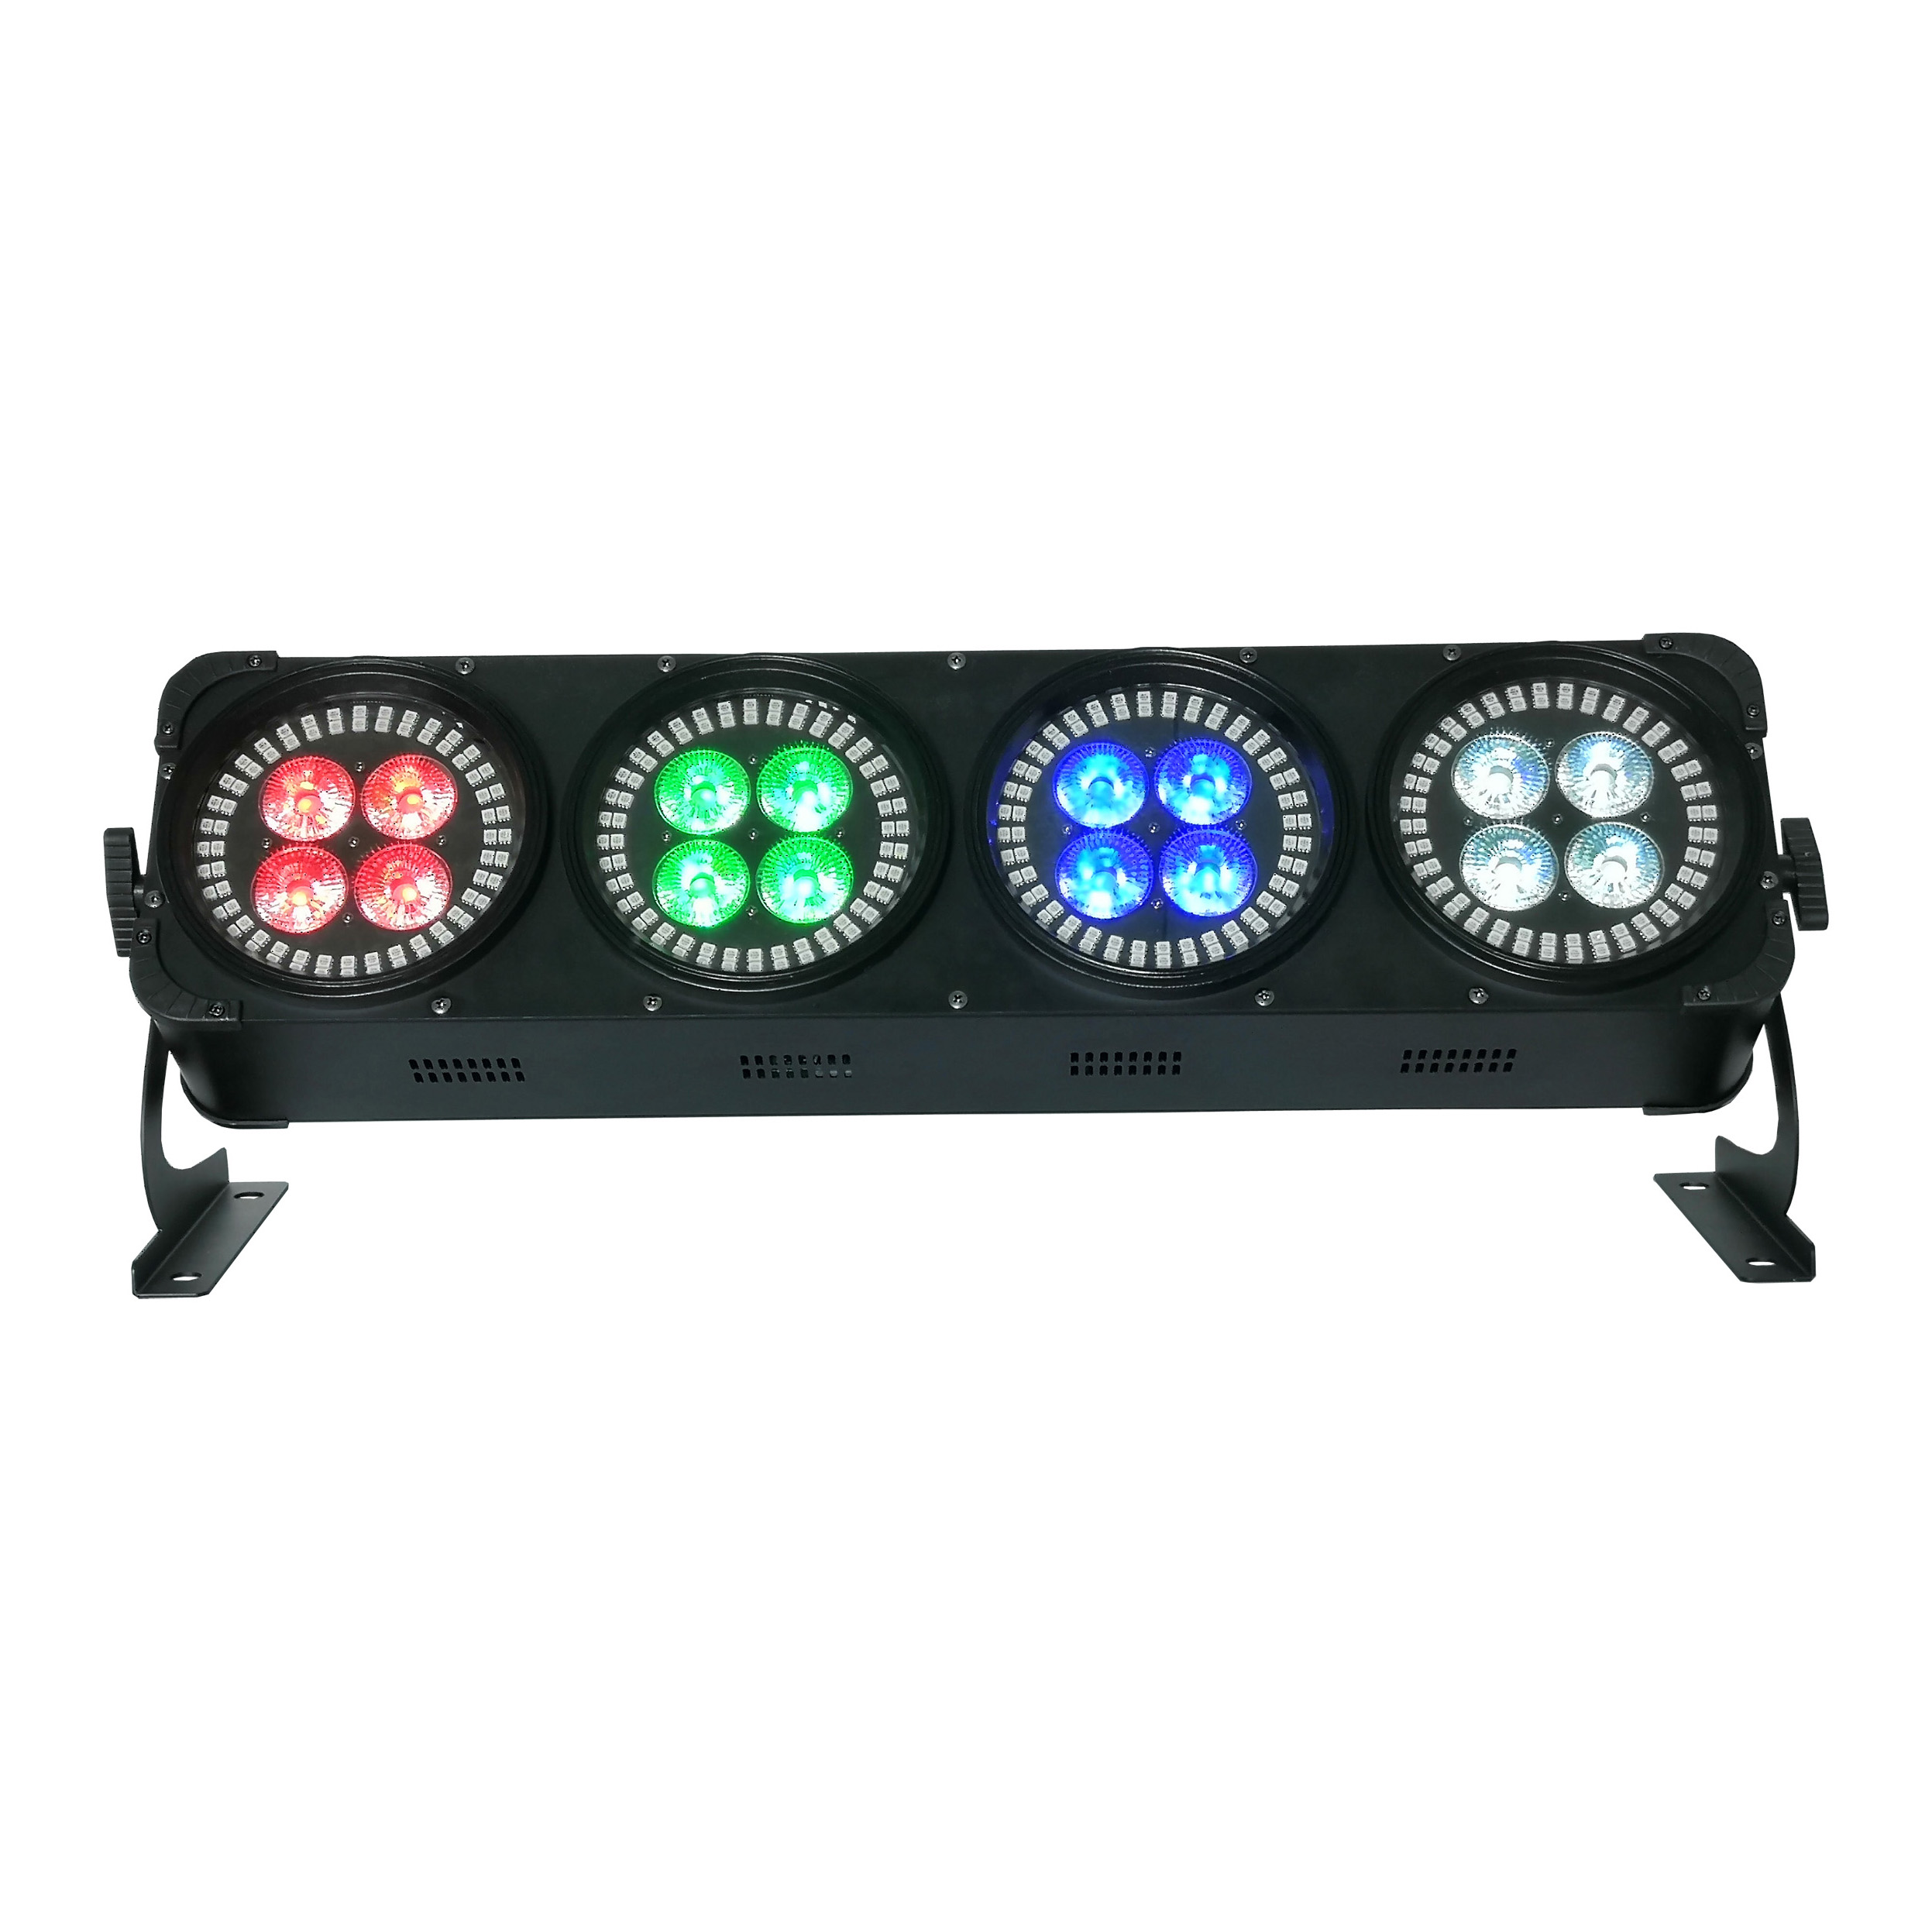 Led Wall China By Lighting Limited Professional Led Wall Washer Supplier And